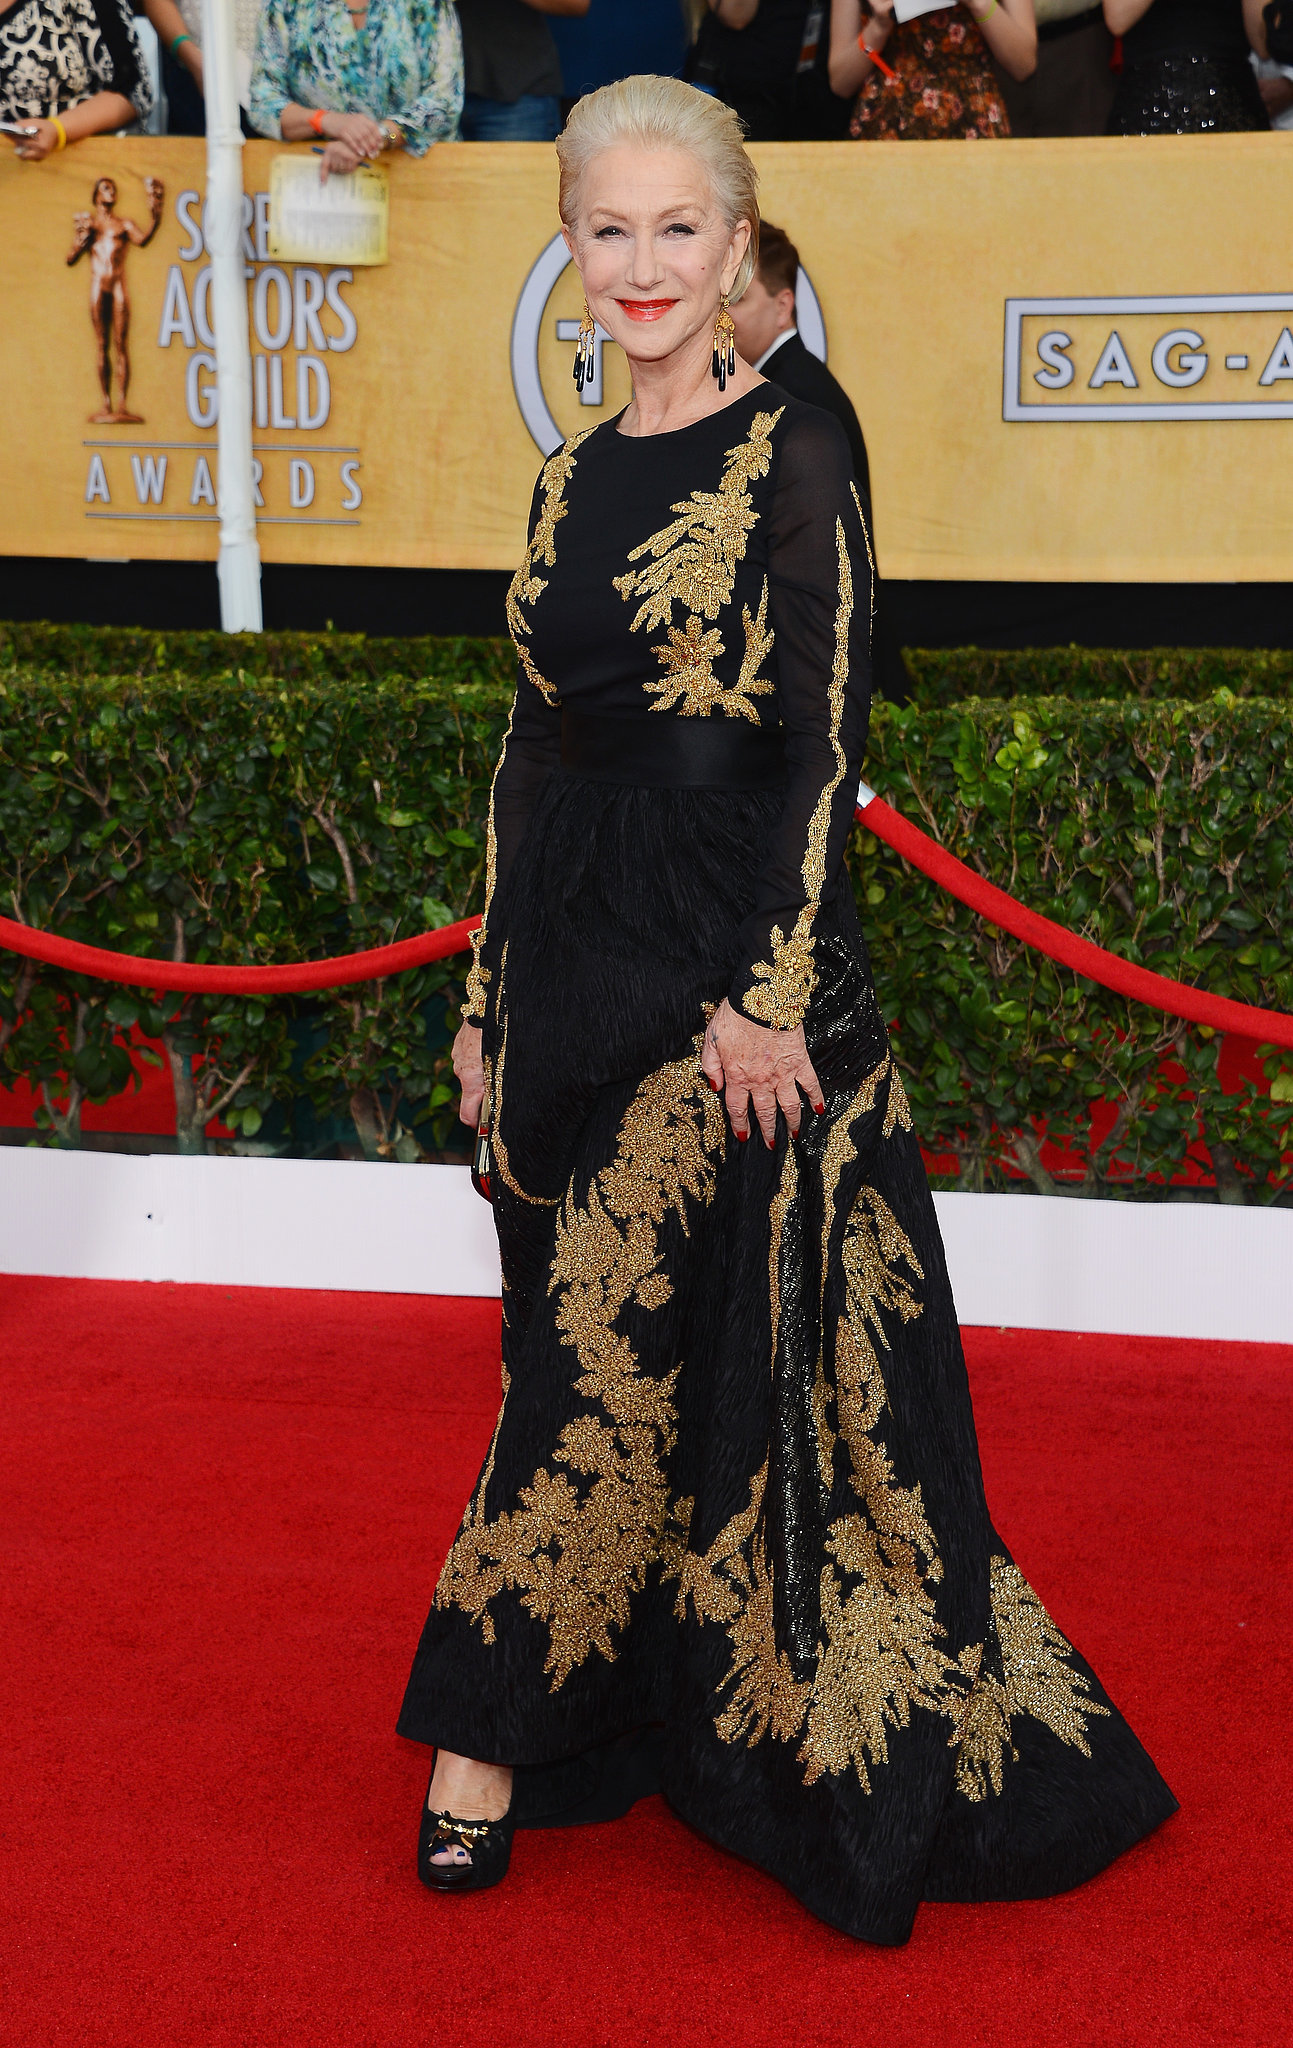 Helen Mirren at the SAG Awards 2014